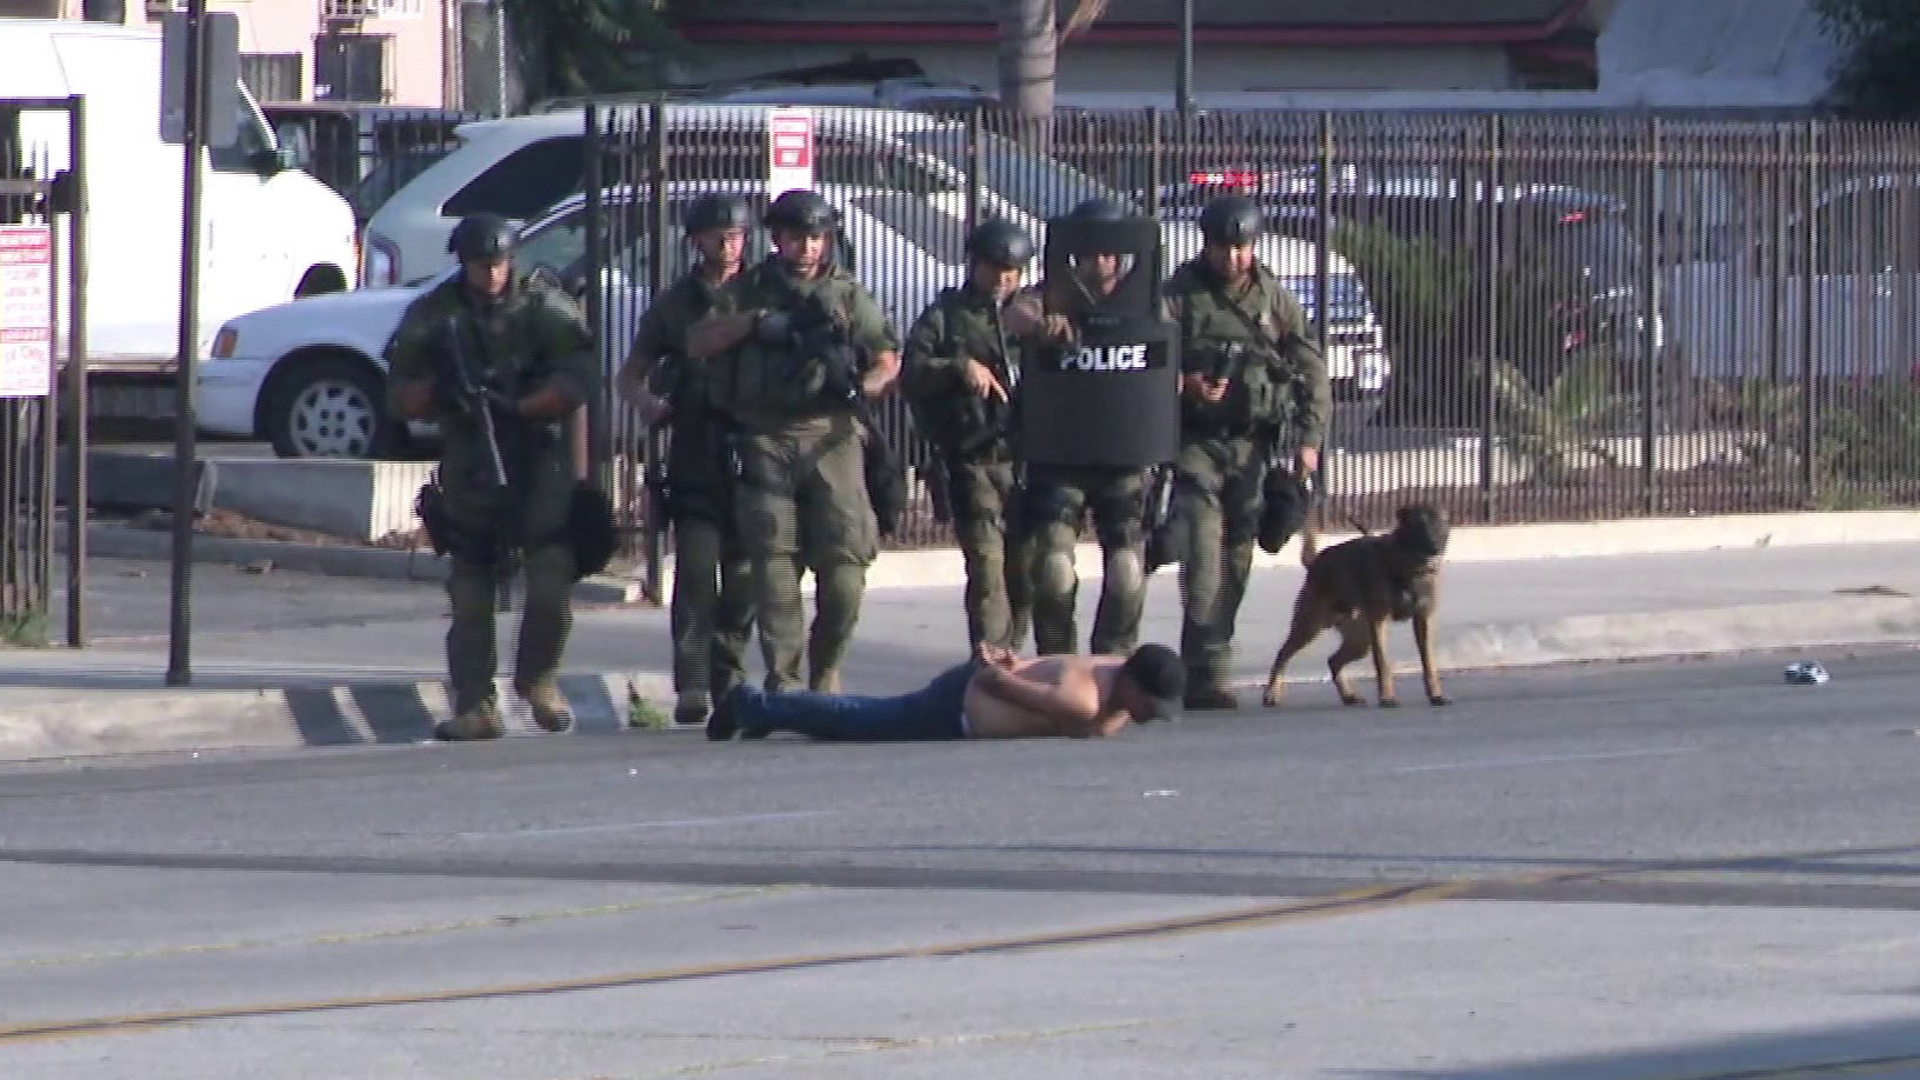 A SWAT team takes an assault suspect into custody following a standoff in El Monte on Sept. 1, 2019. (Credit: KTLA)